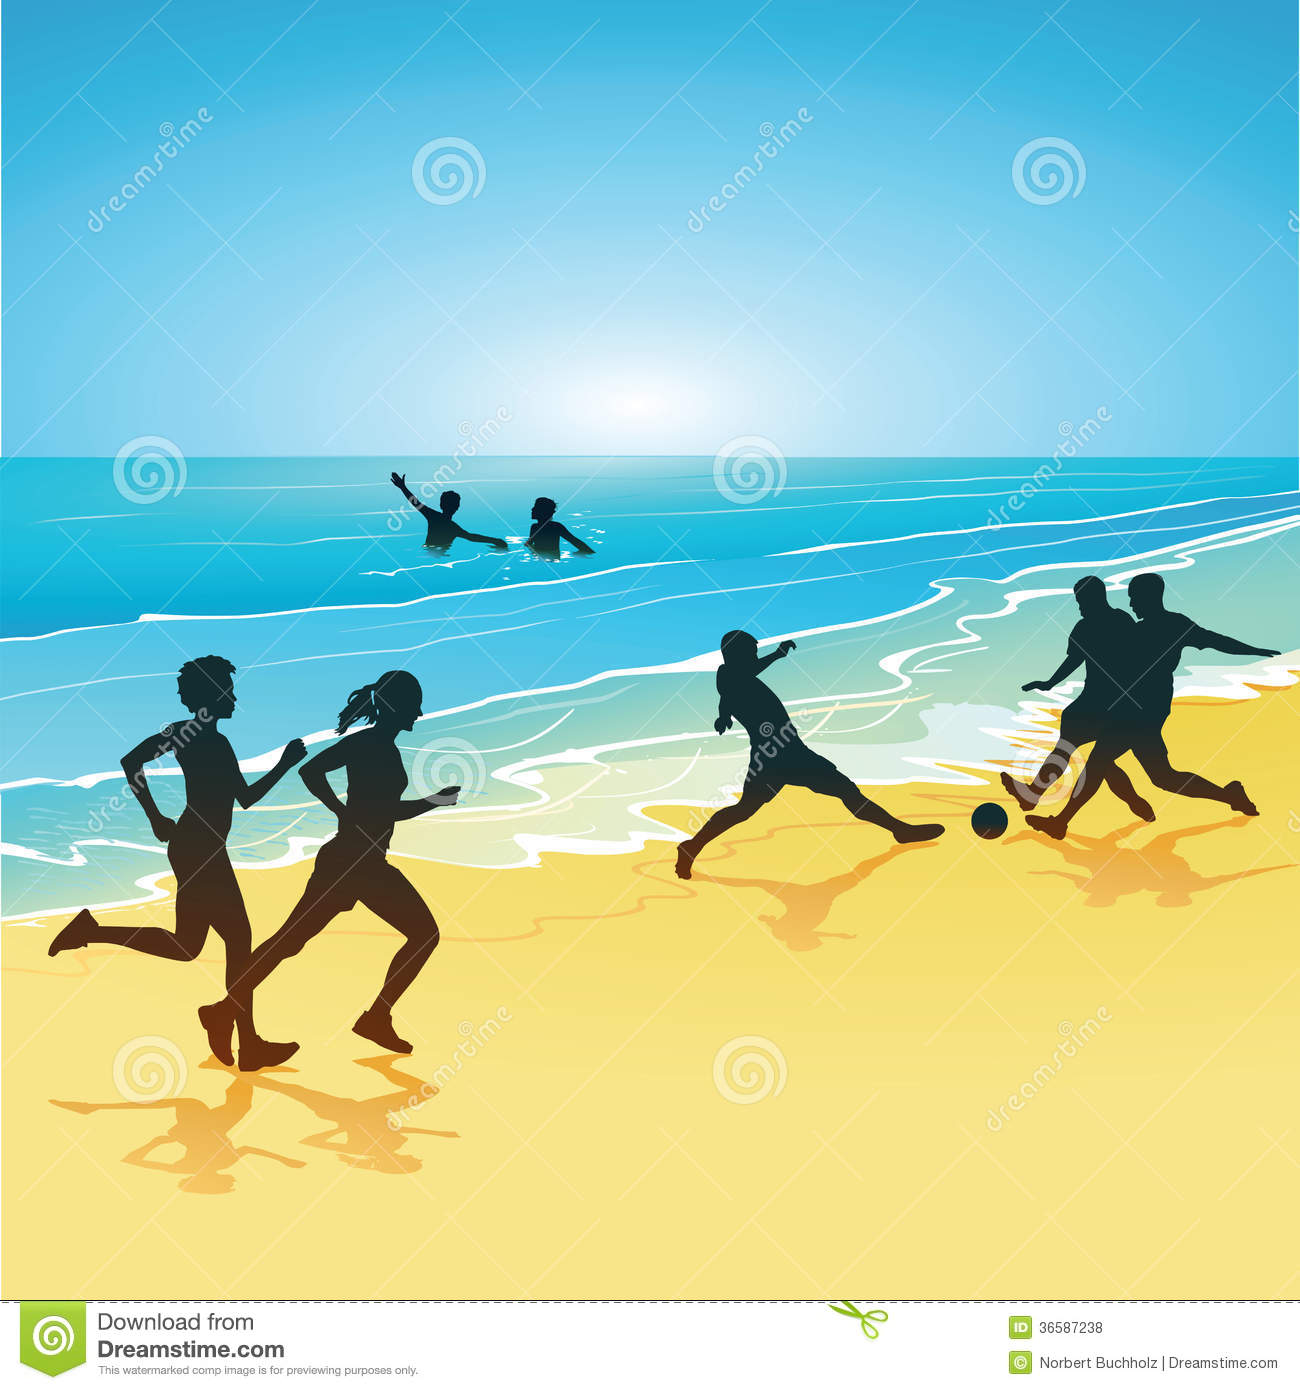 People Playing Sports On A Beach